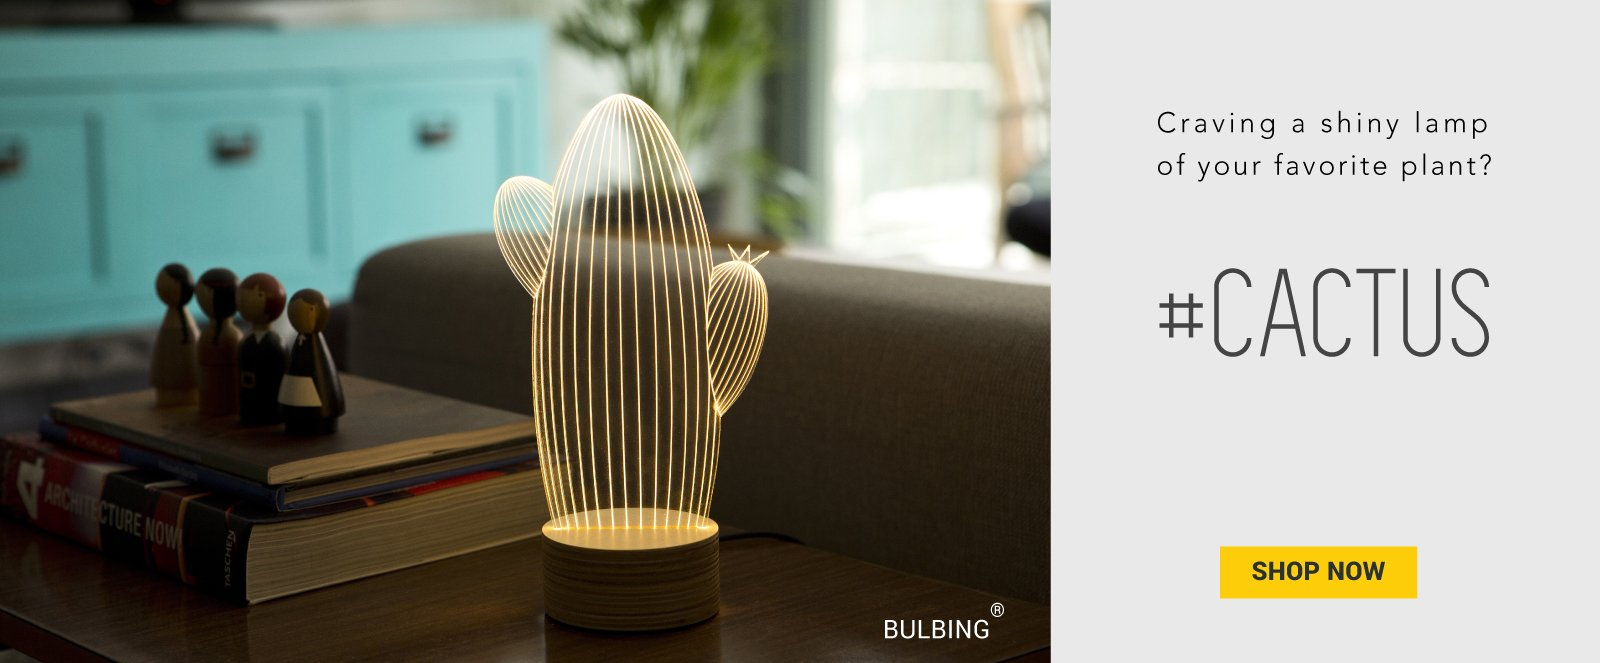 https://www.bulbing-light.com/collections/bulbing/products/bulbing-lamp-tunnel1